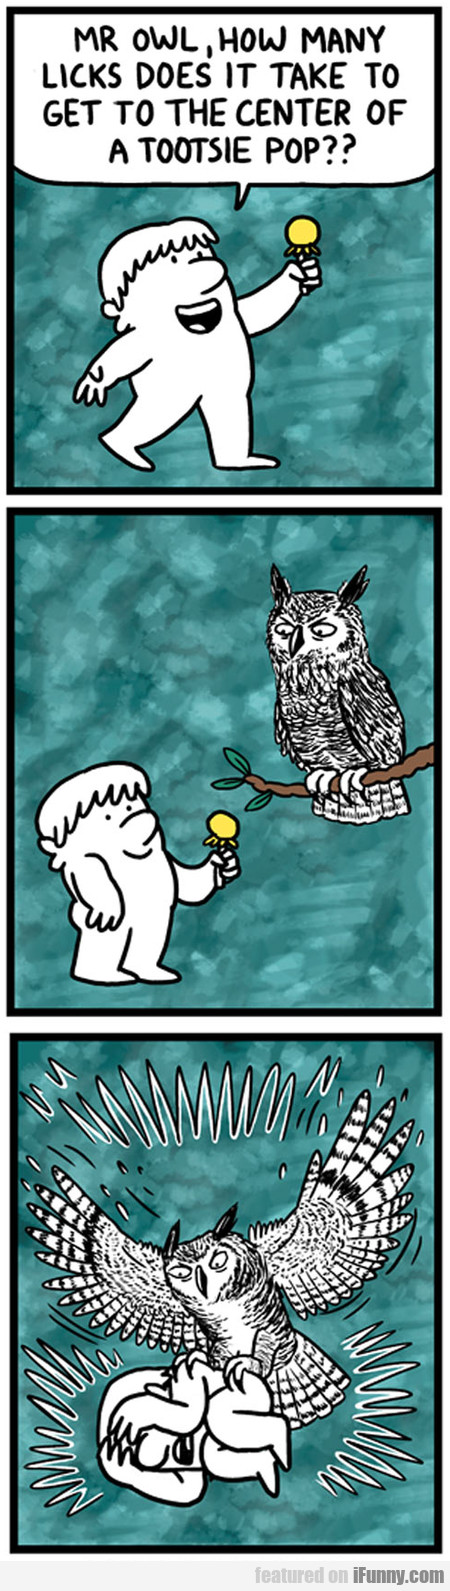 Mr Owl, How Many Licks Does It Take To...